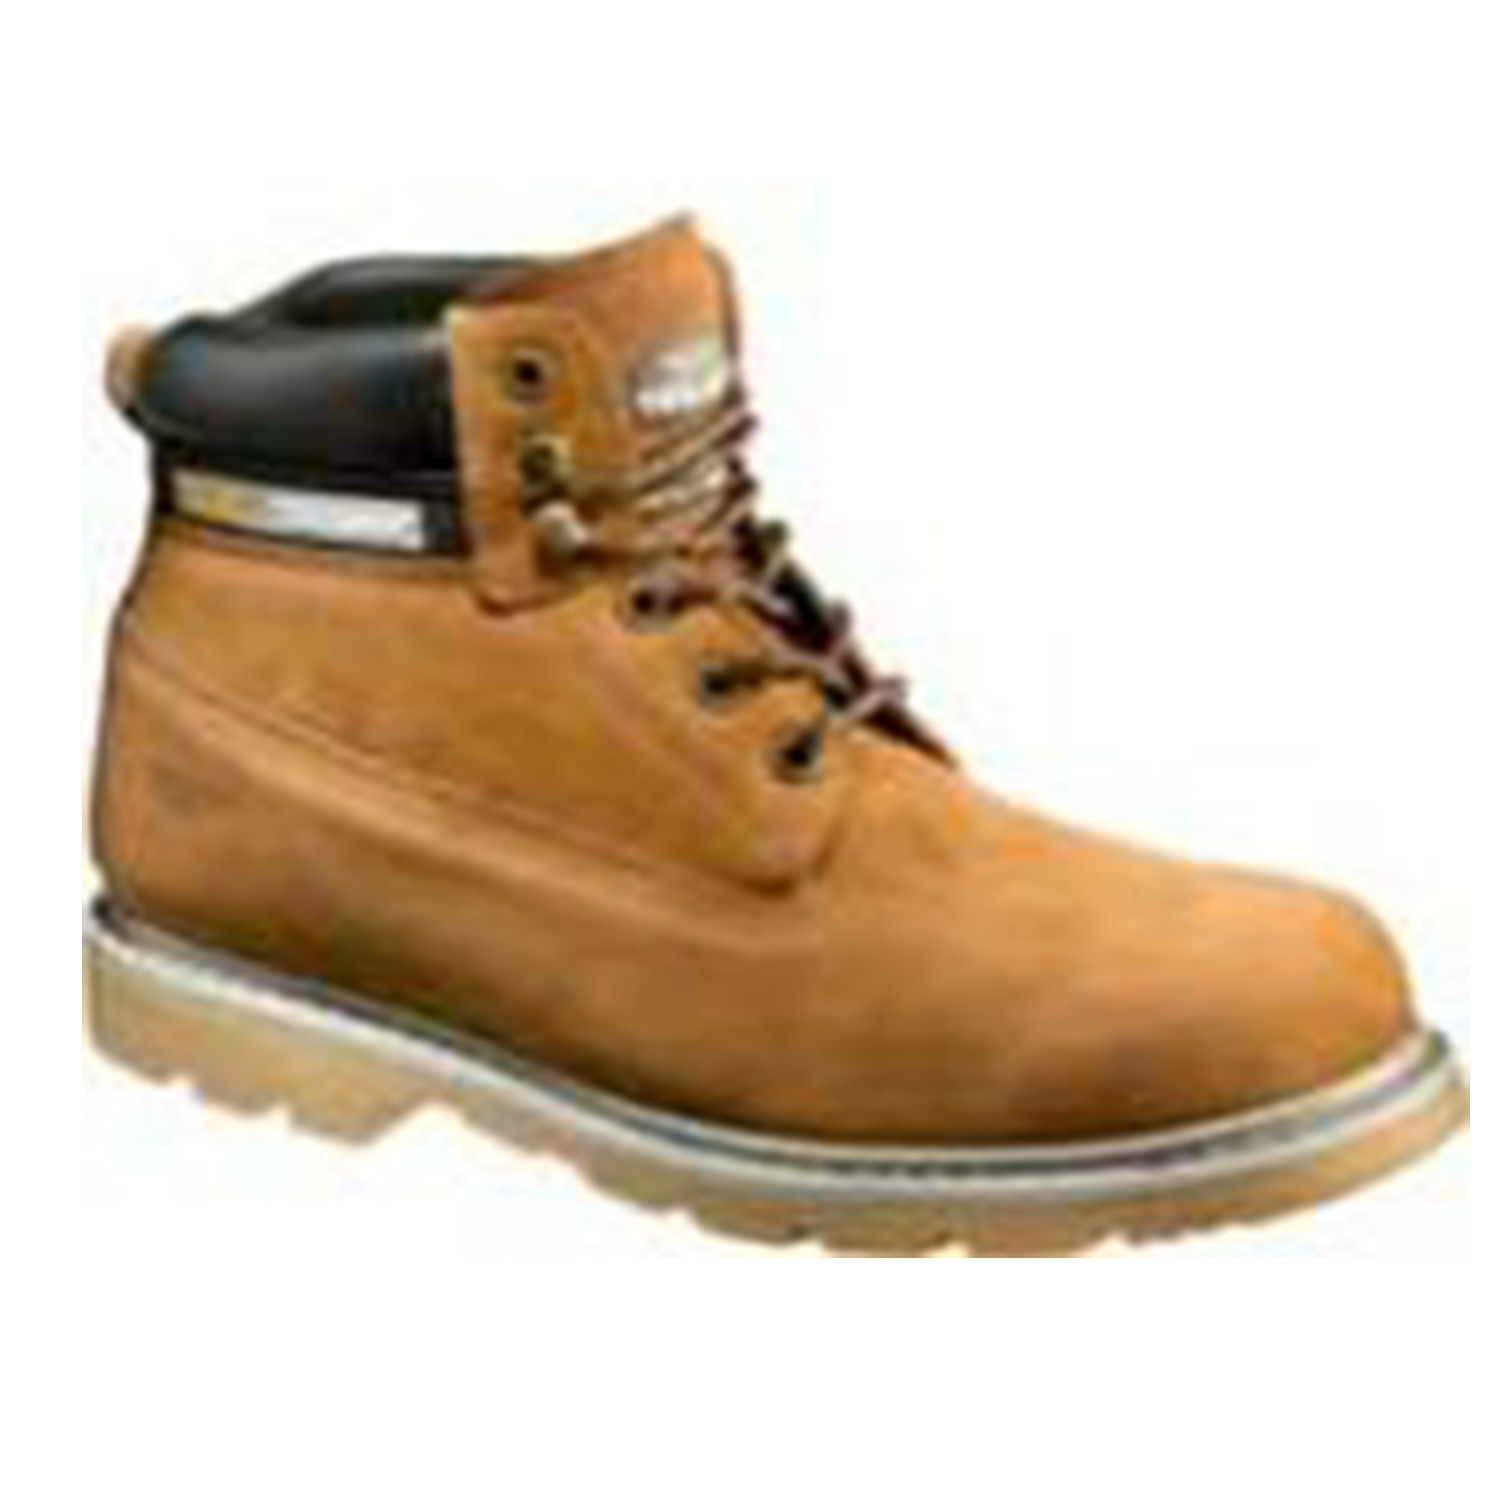 best selection of purchase cheap lowest discount Trojan Safety Boot